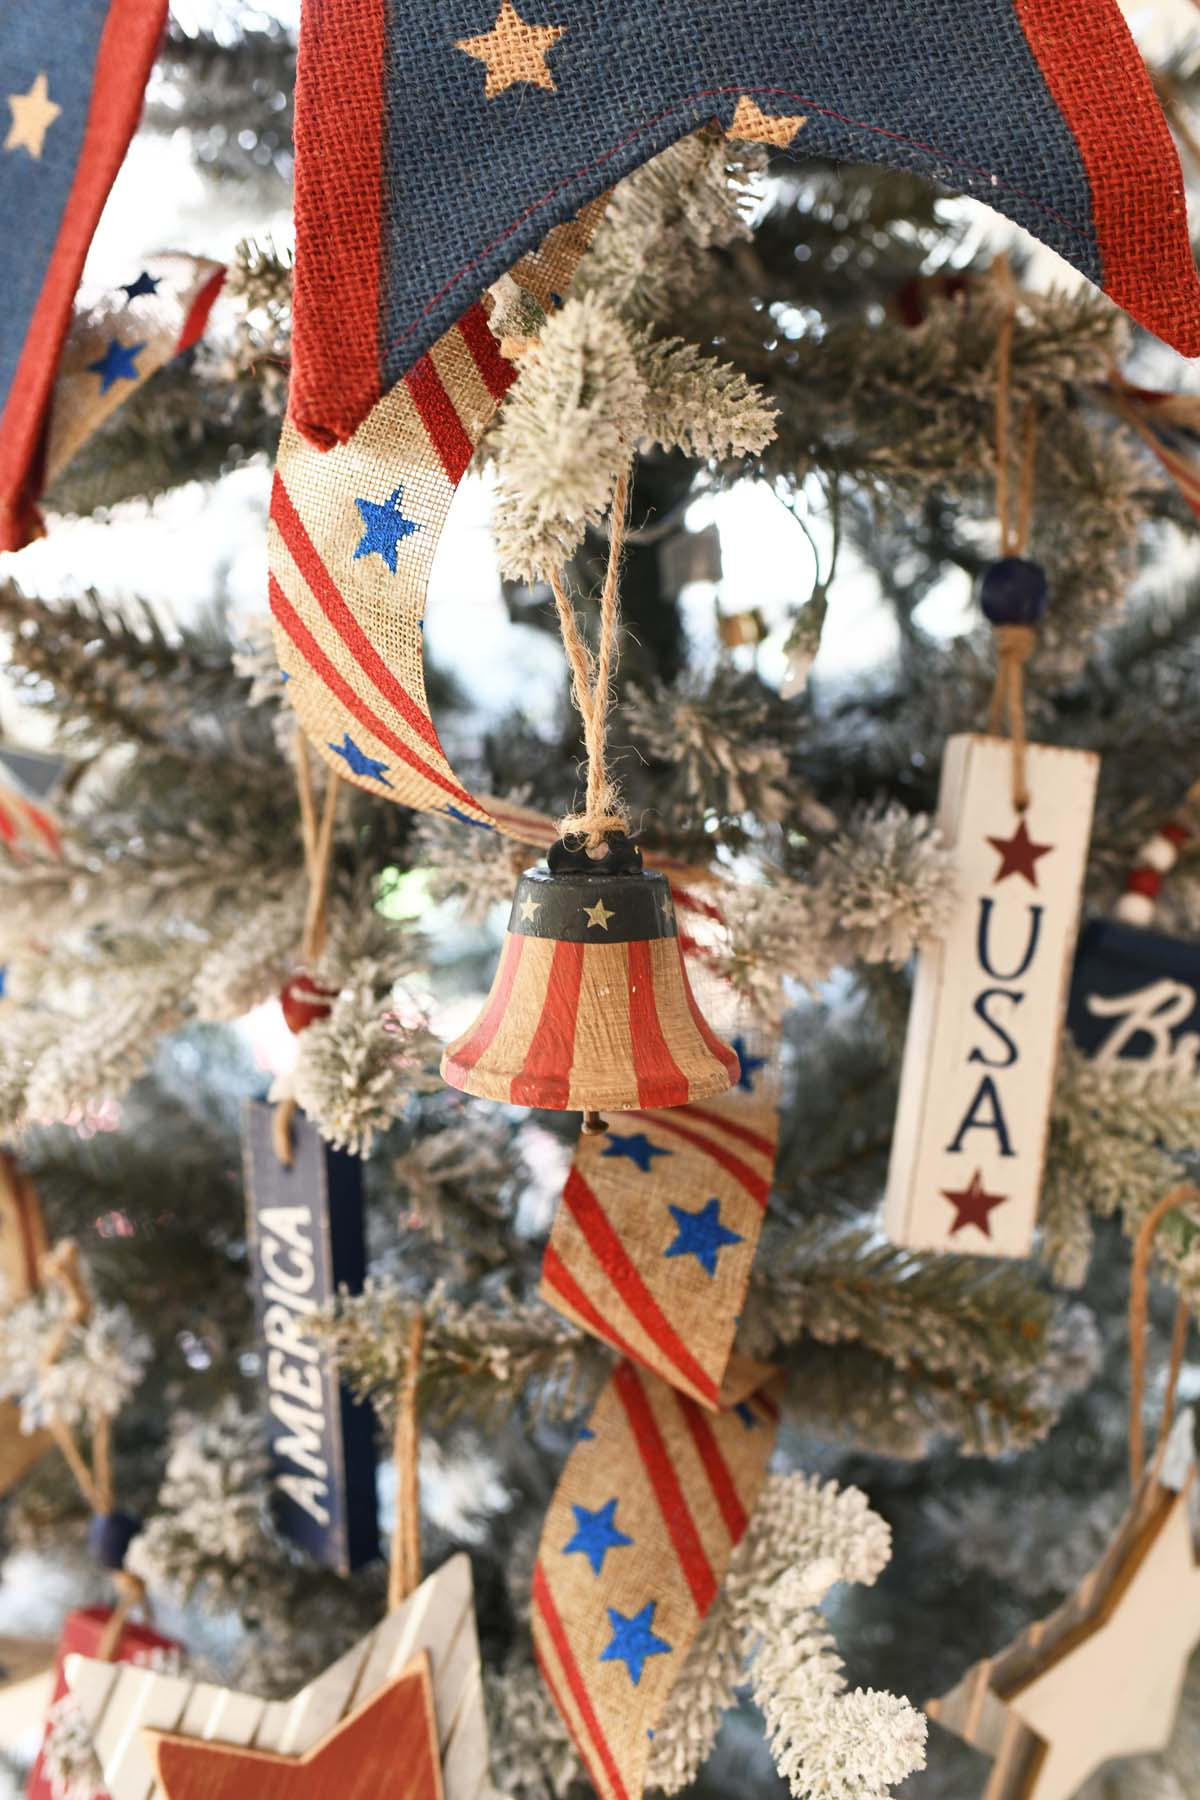 Patriotic Liberty Bell ornament on a Christmas Tree.